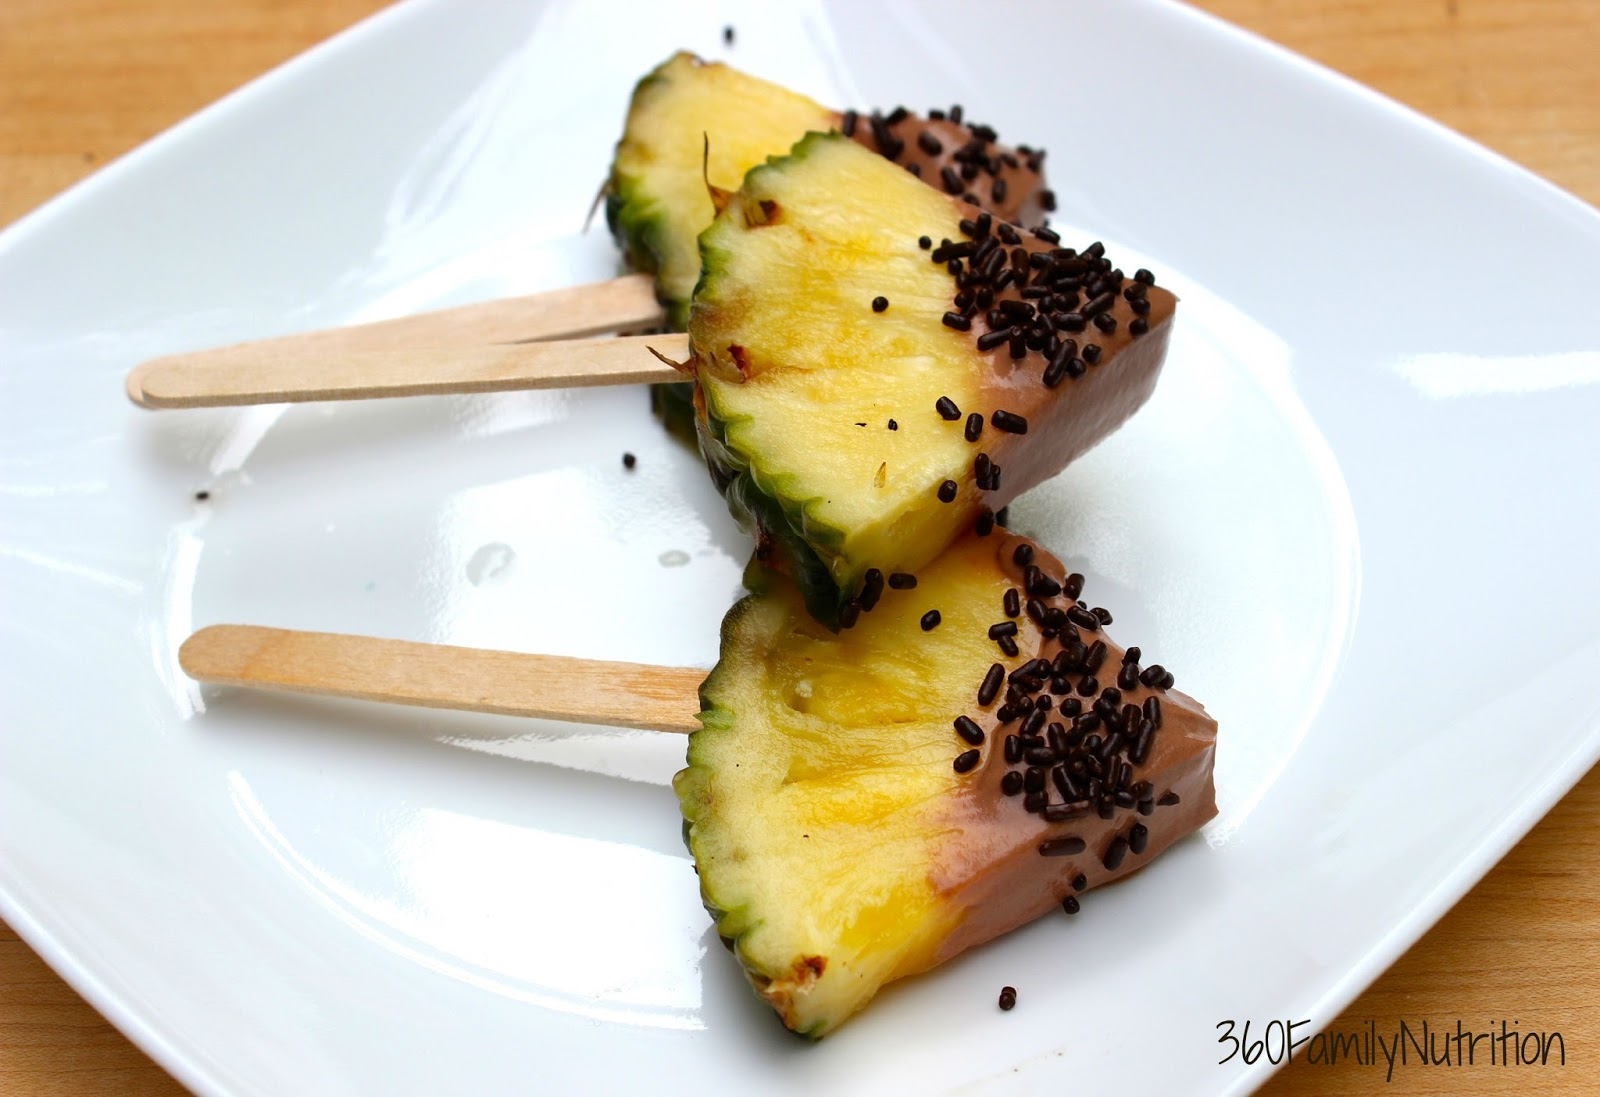 Can You Dip Pineapple In Chocolate